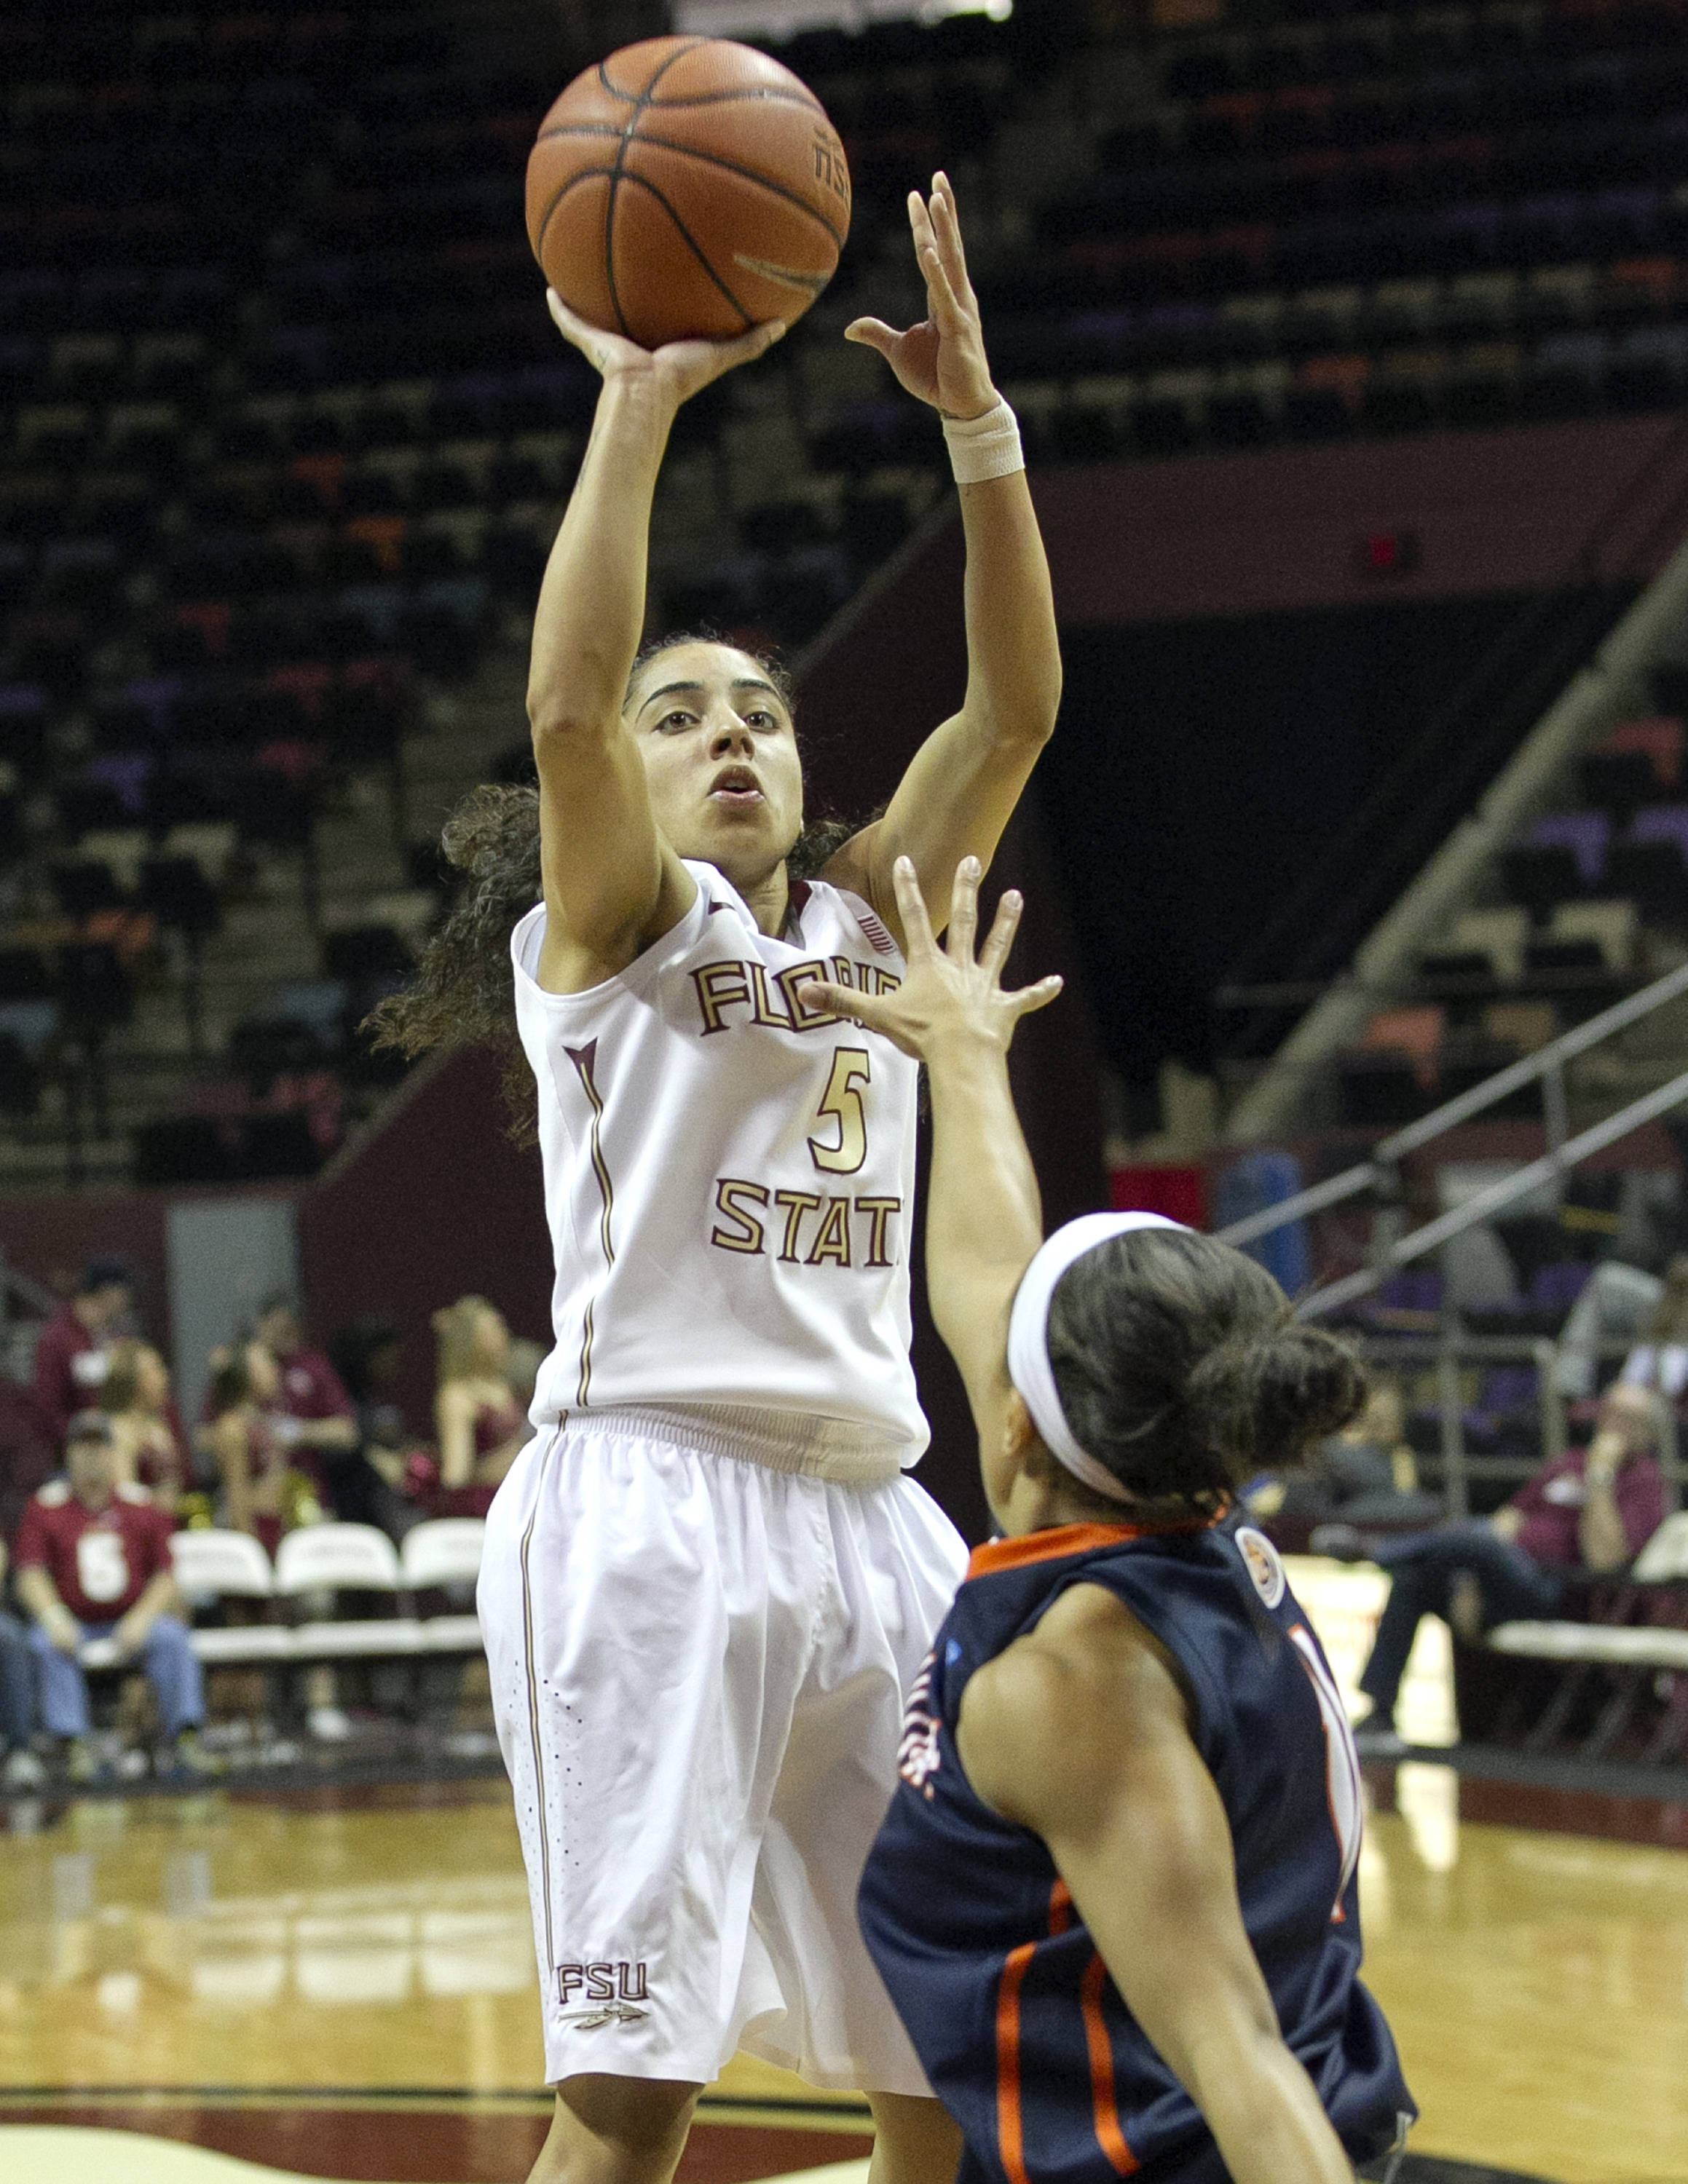 Cheetah Delgado (5) with a jumper, FSU vs UT Martin, 12-28-13,  (Photo by Steve Musco)